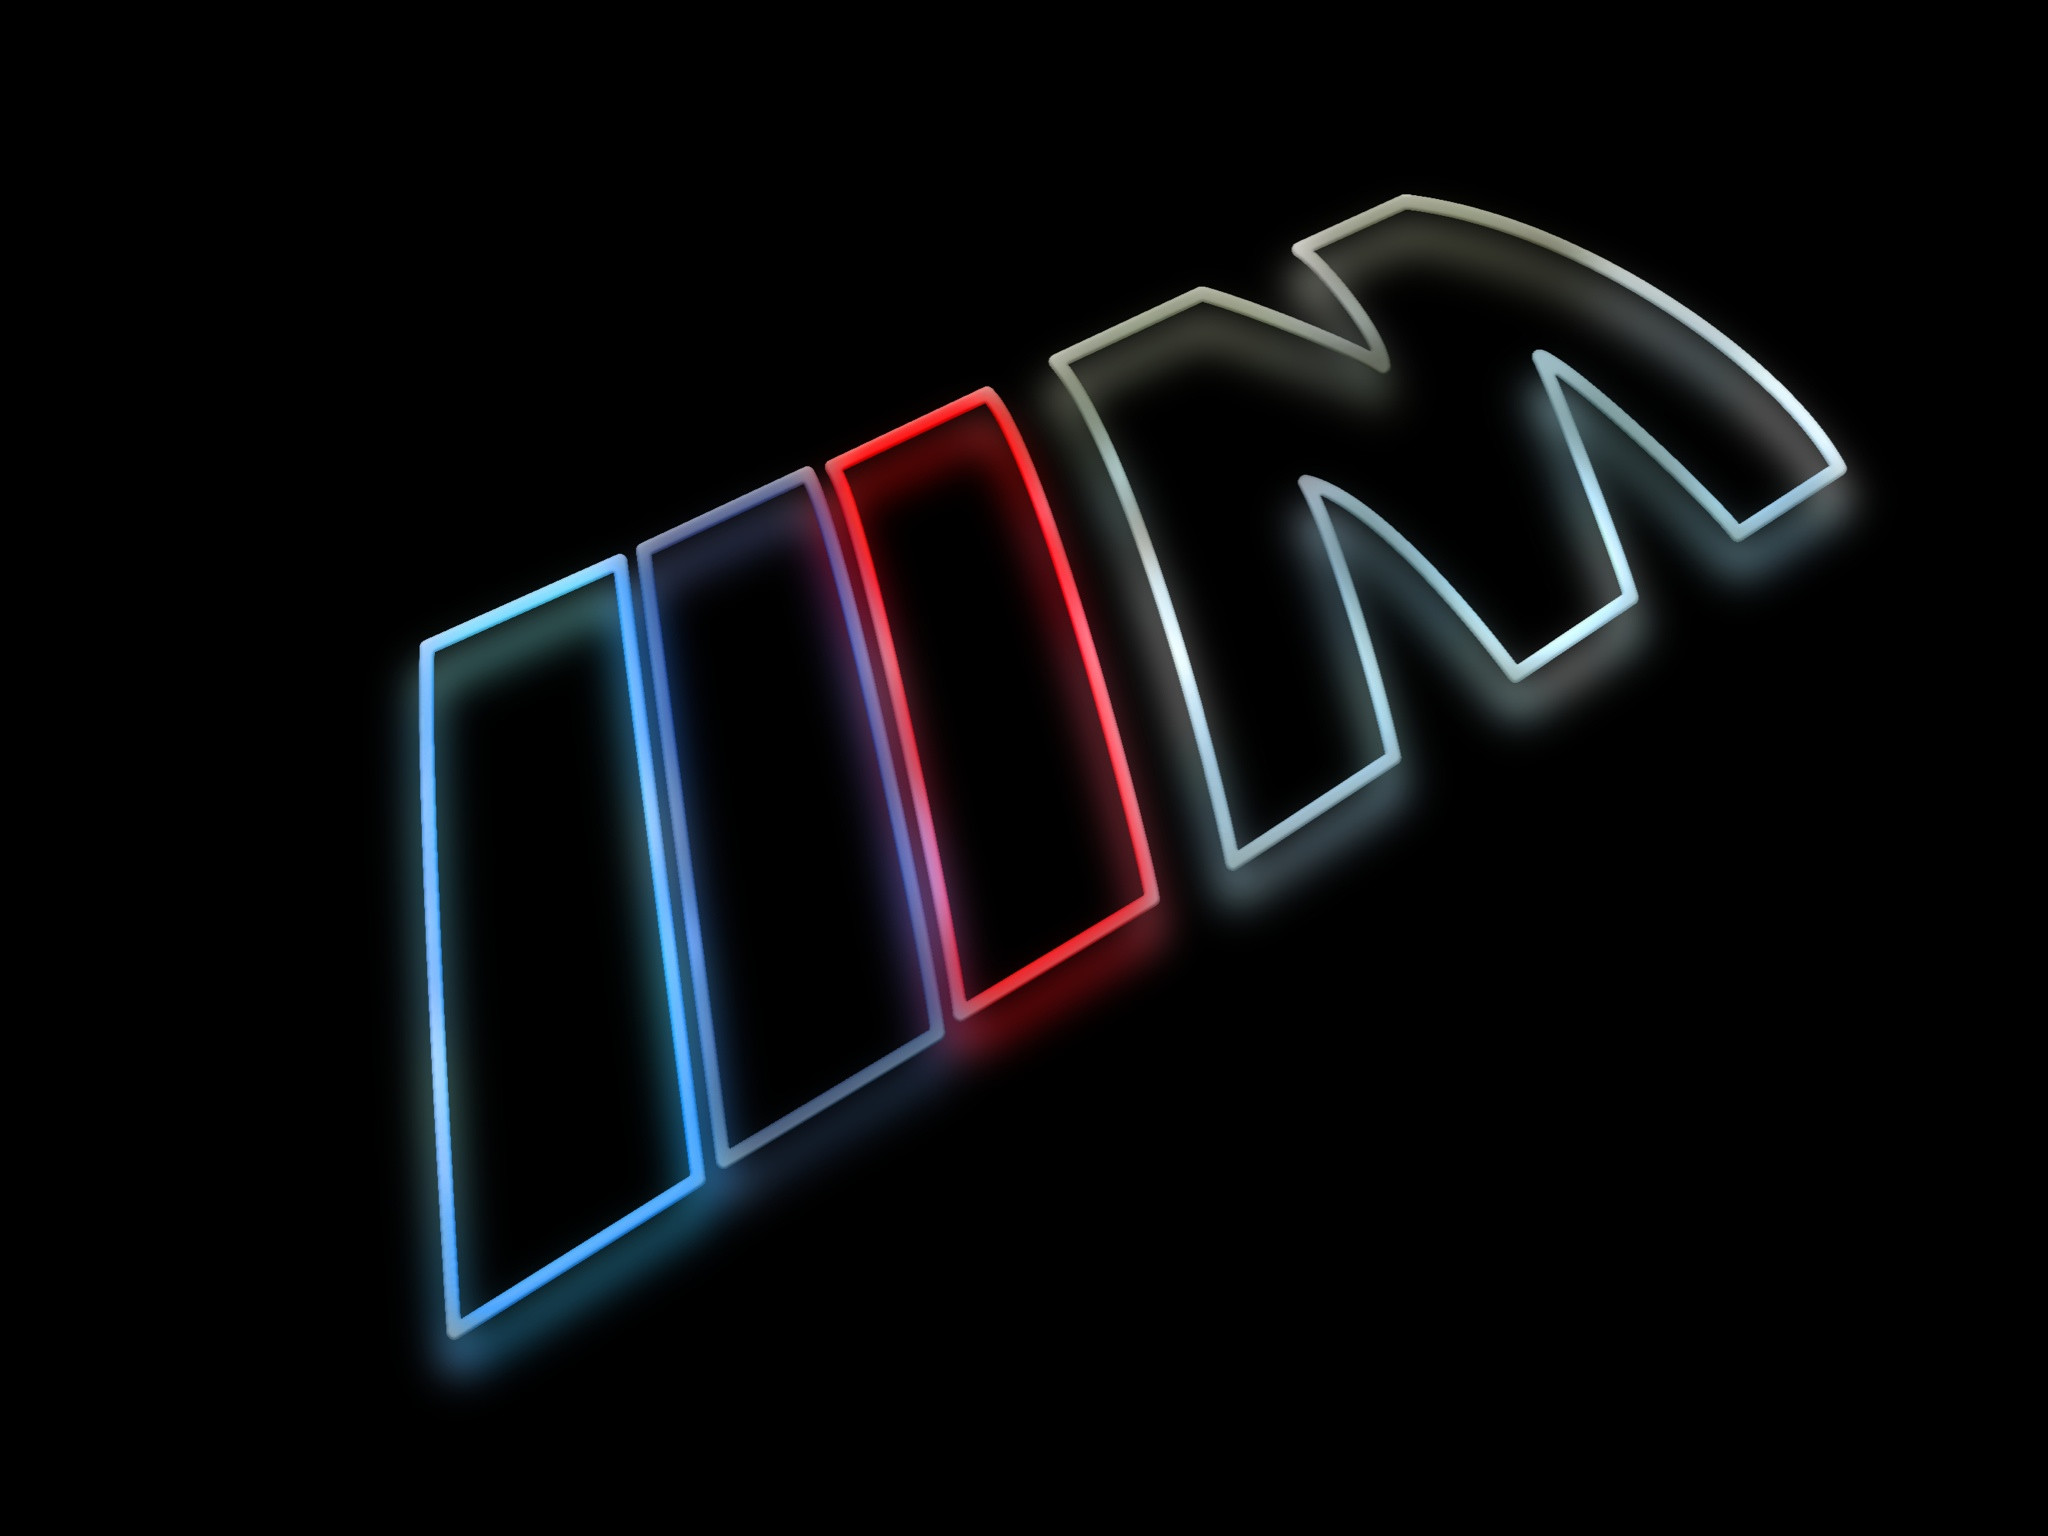 2048x1536 BMW M Logo as a colorful silhouette rendering with a glow against a shiny  black surface